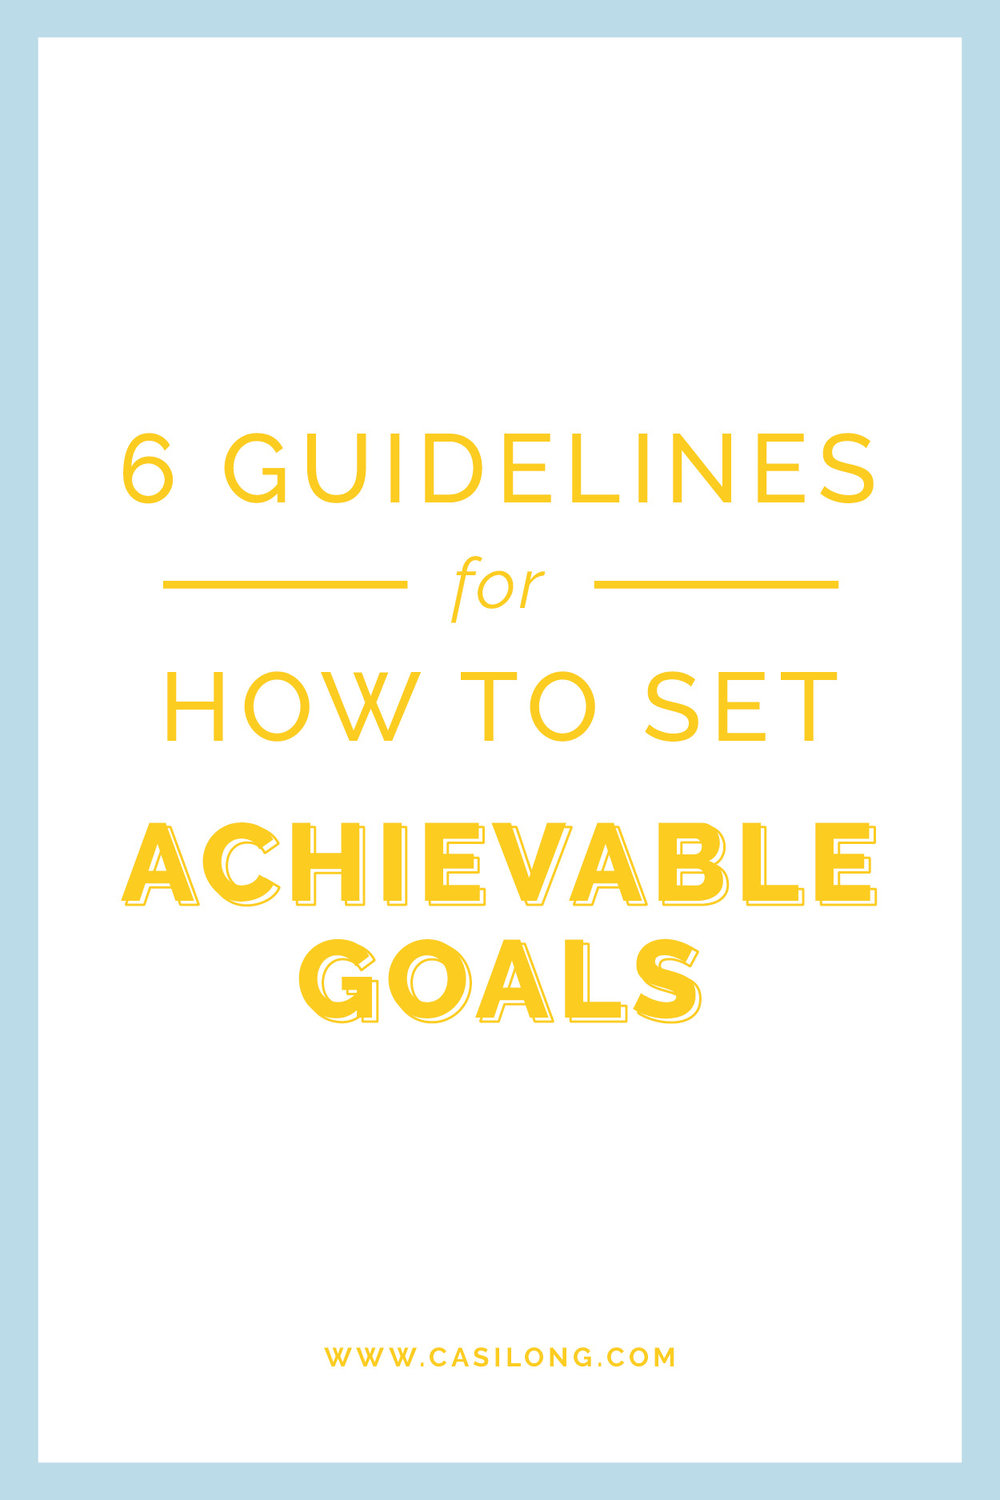 6 guidelines for how to set achievable goals | casilong.com #casilongdesign #fearlesspursuit